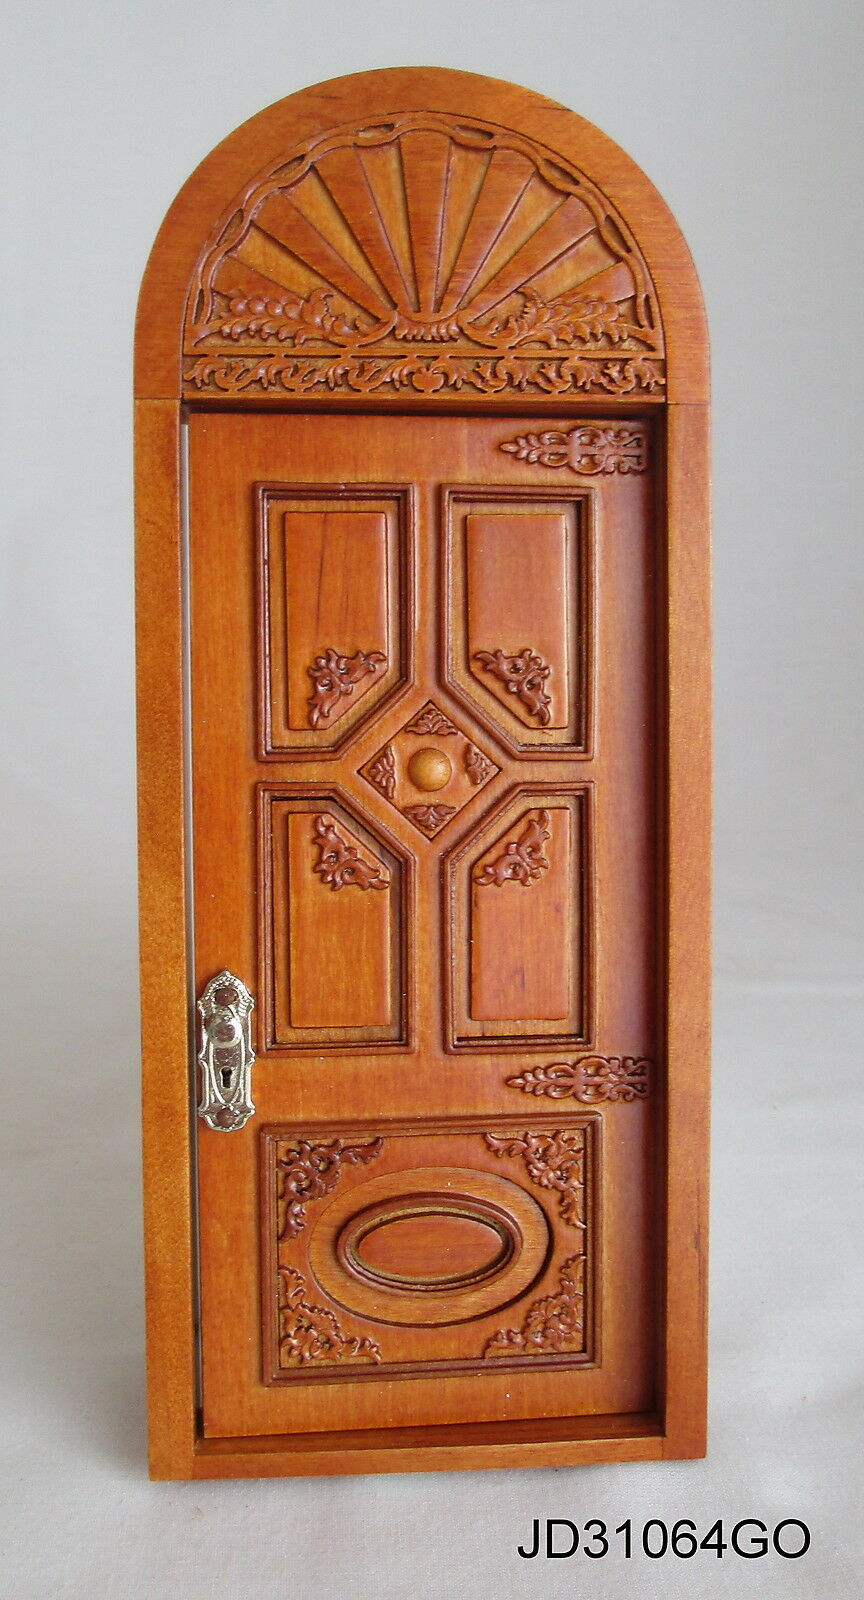 JBM Miniatures JD31064WN - Victorian Carved Door - Maple - 1:12 Scale FREE SHIP